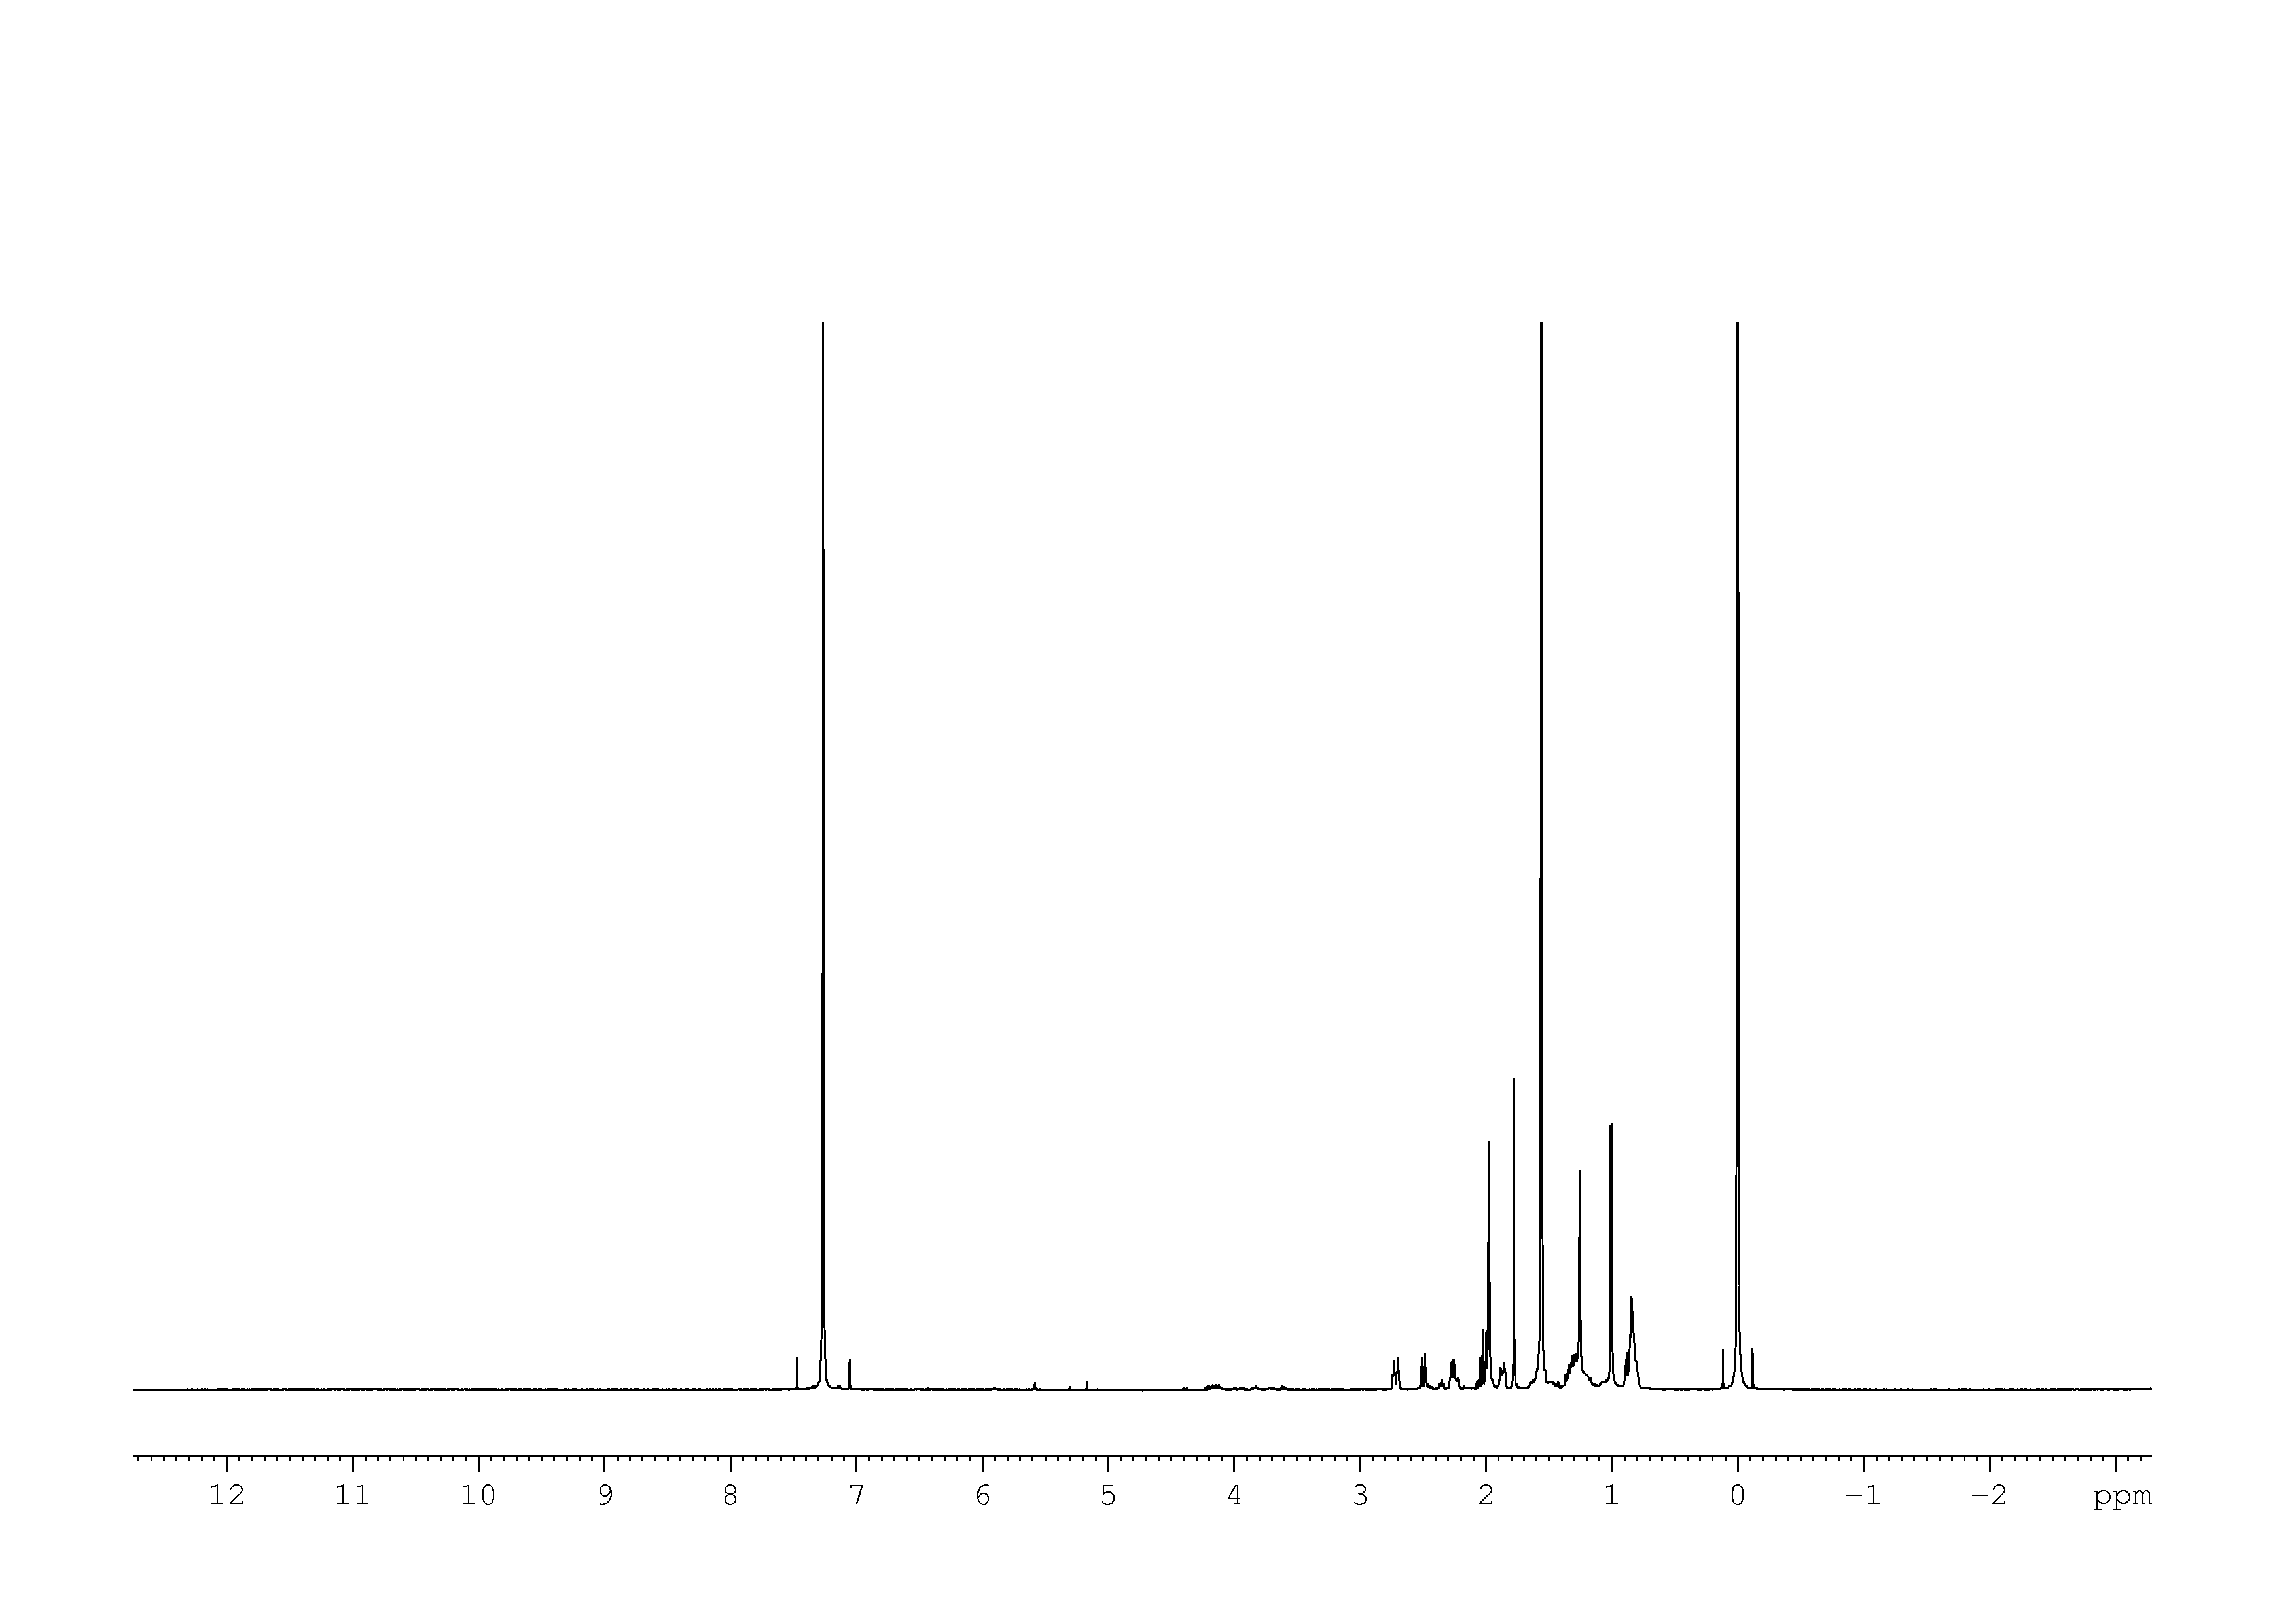 1D 1H, 0.5 mM, n/a spectrum for (+)-Pulegone